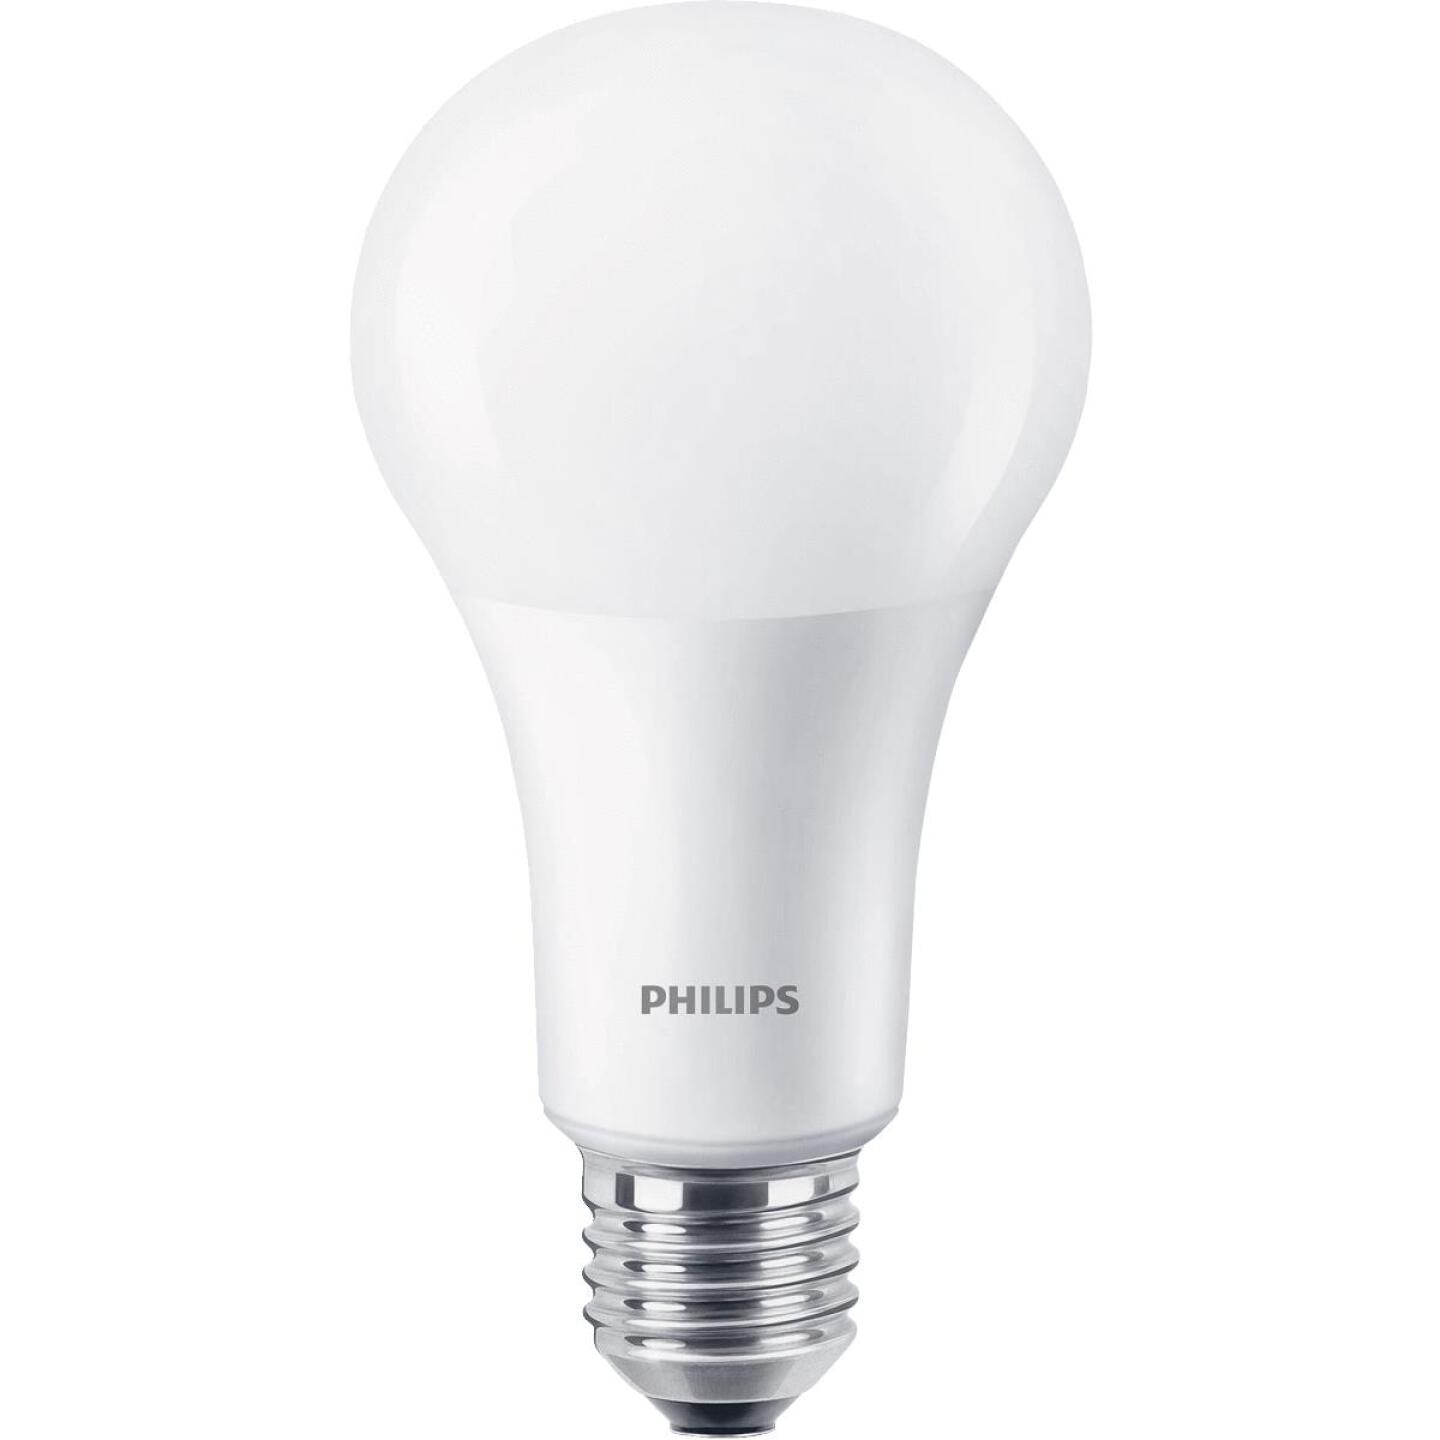 Philips 75W Equivalent Daylight A19 Medium Dimmable LED Light Bulb Image 1